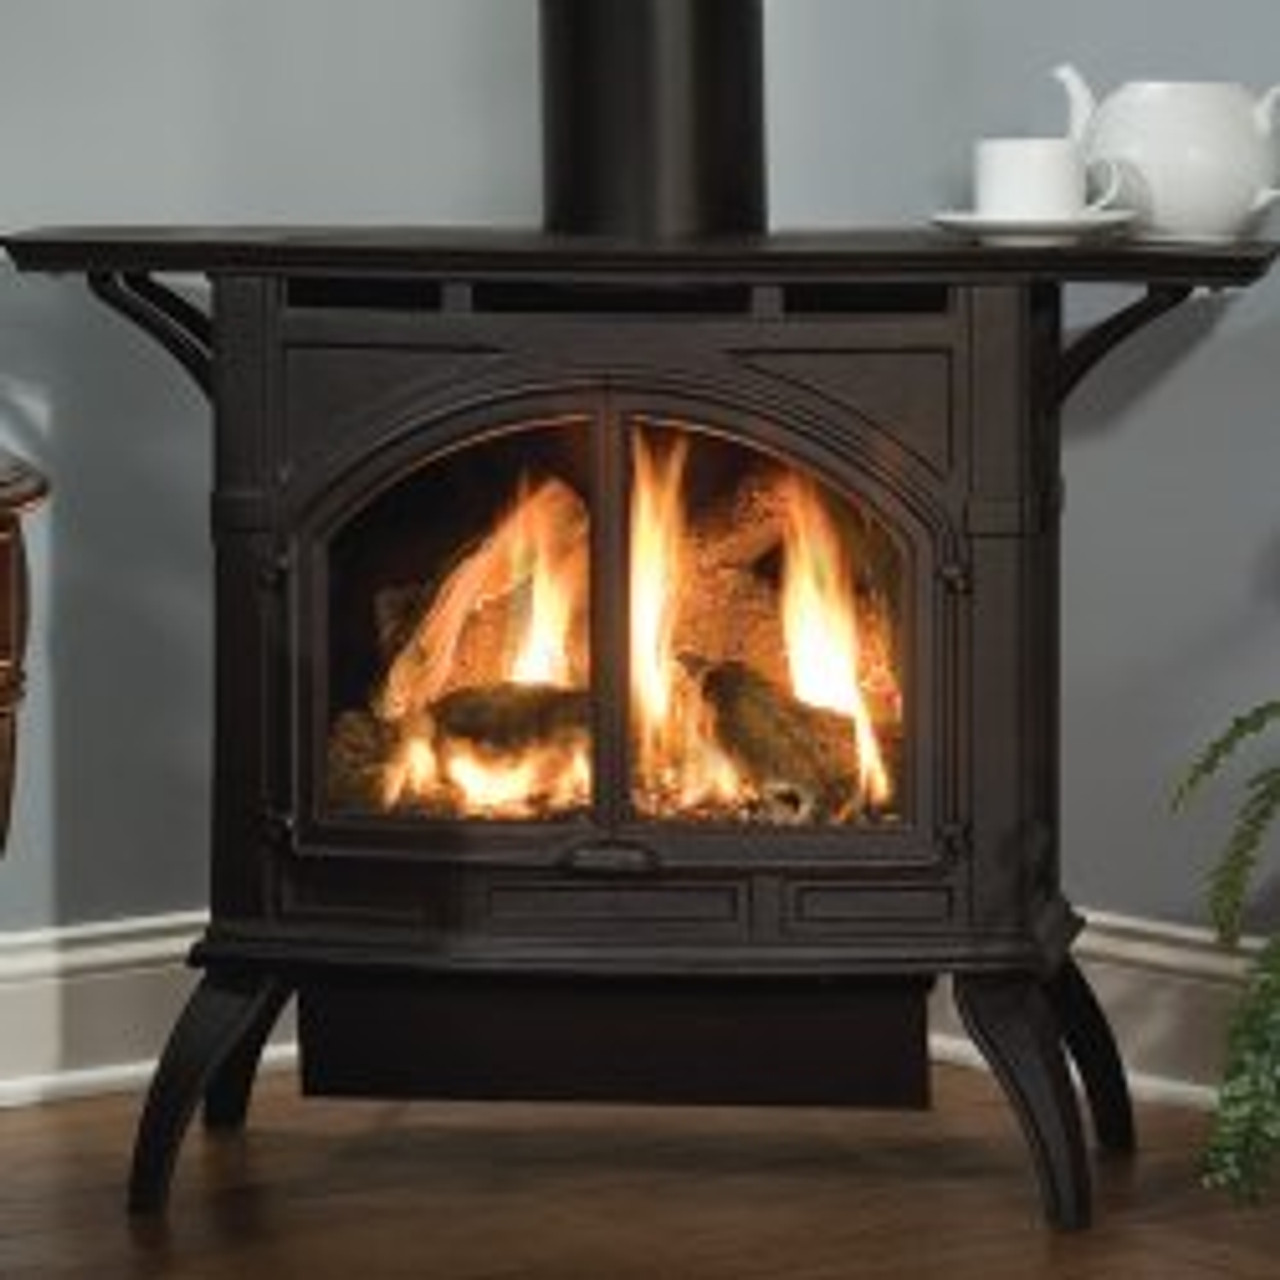 American Hearth Heritage Vf20 Vent Free Gas Stove